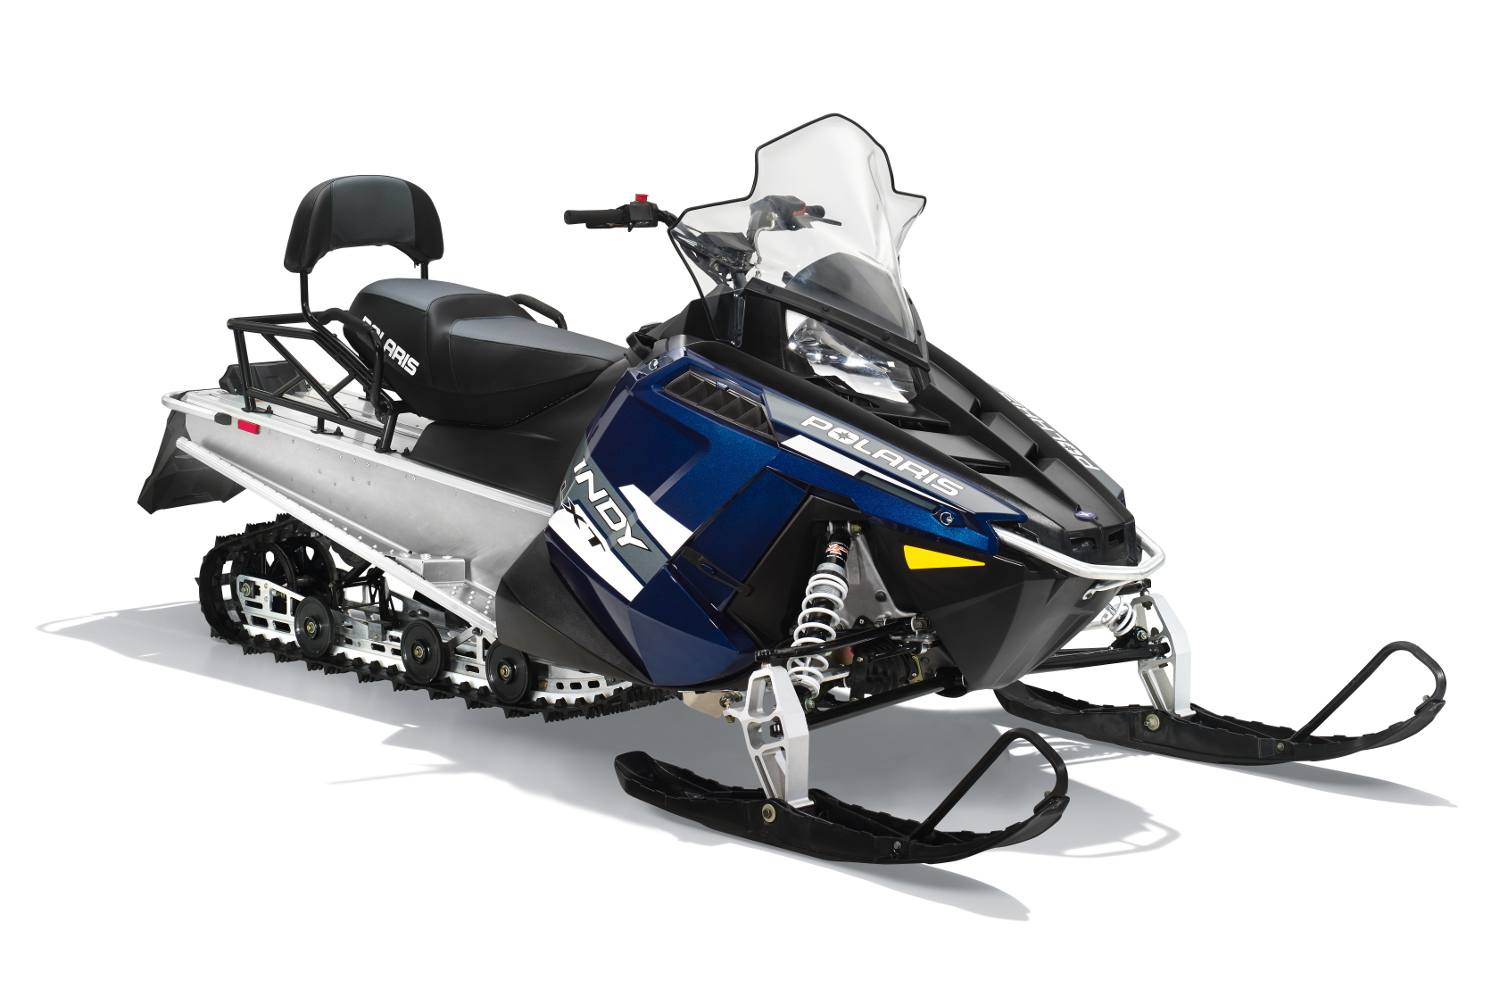 2015 ATV and Snowmobile from Polaris Industries and Can-Am